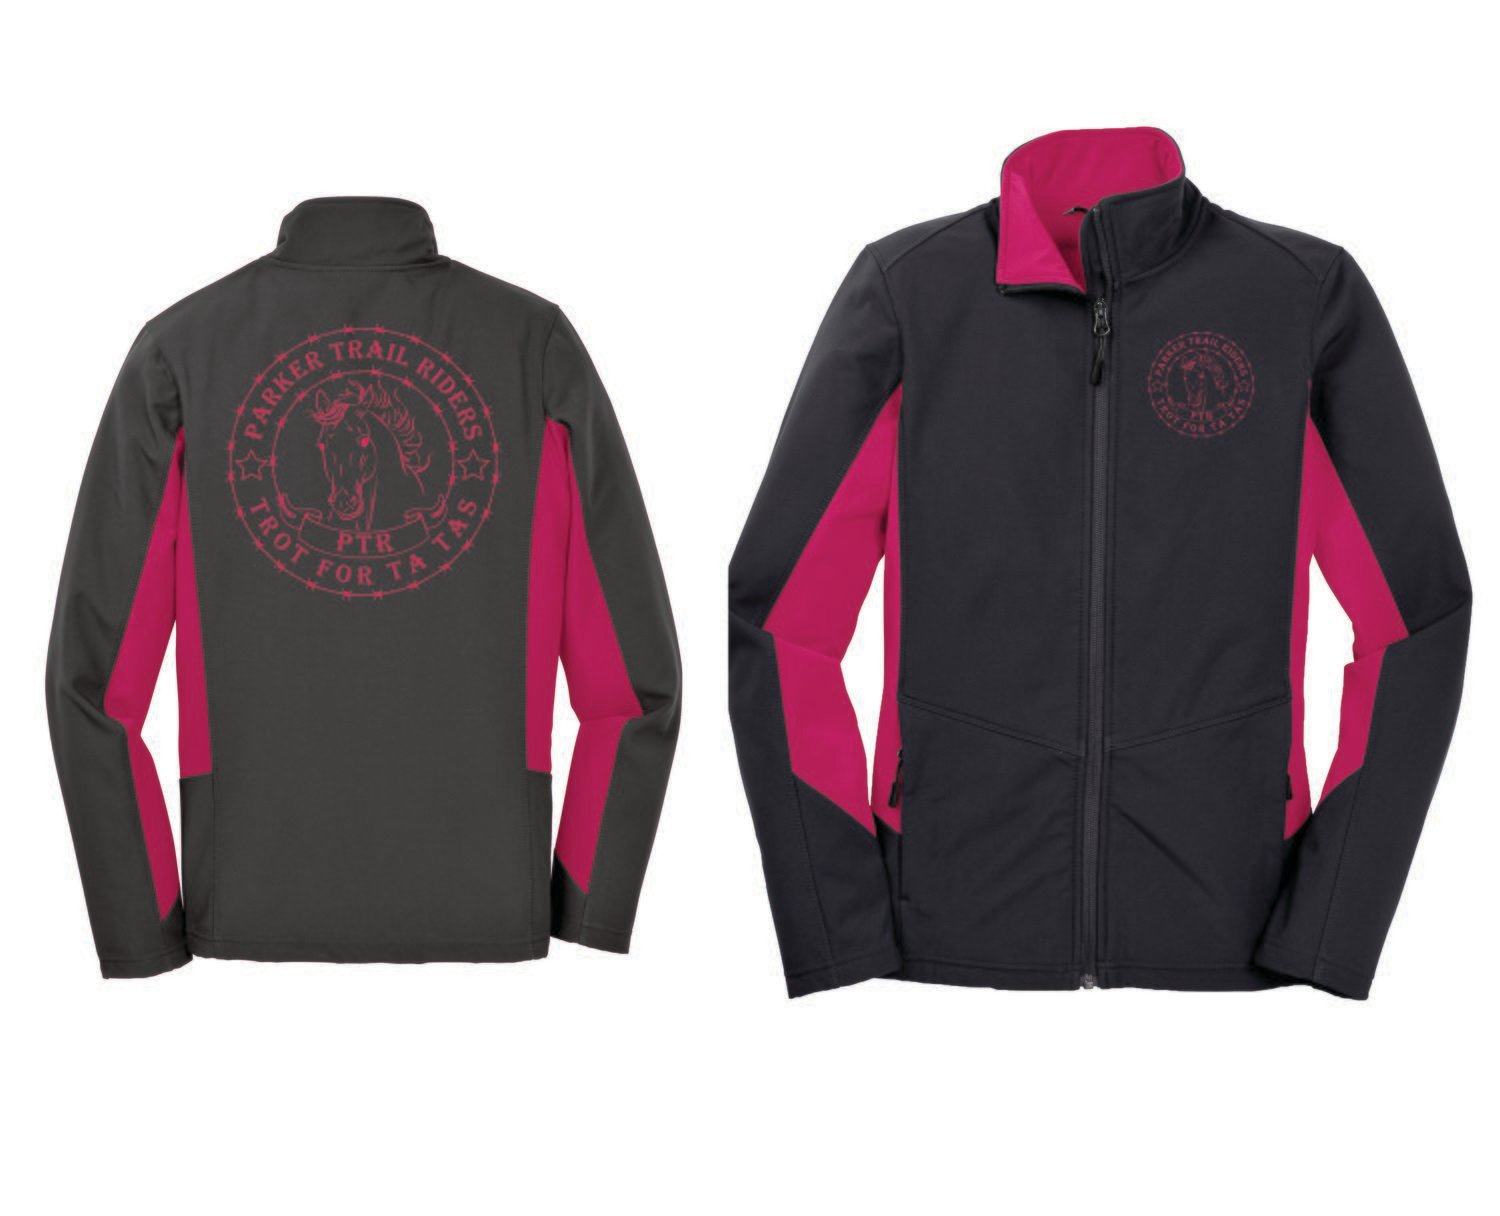 Ladies Soft Shell PTR Ta Tas Jacket